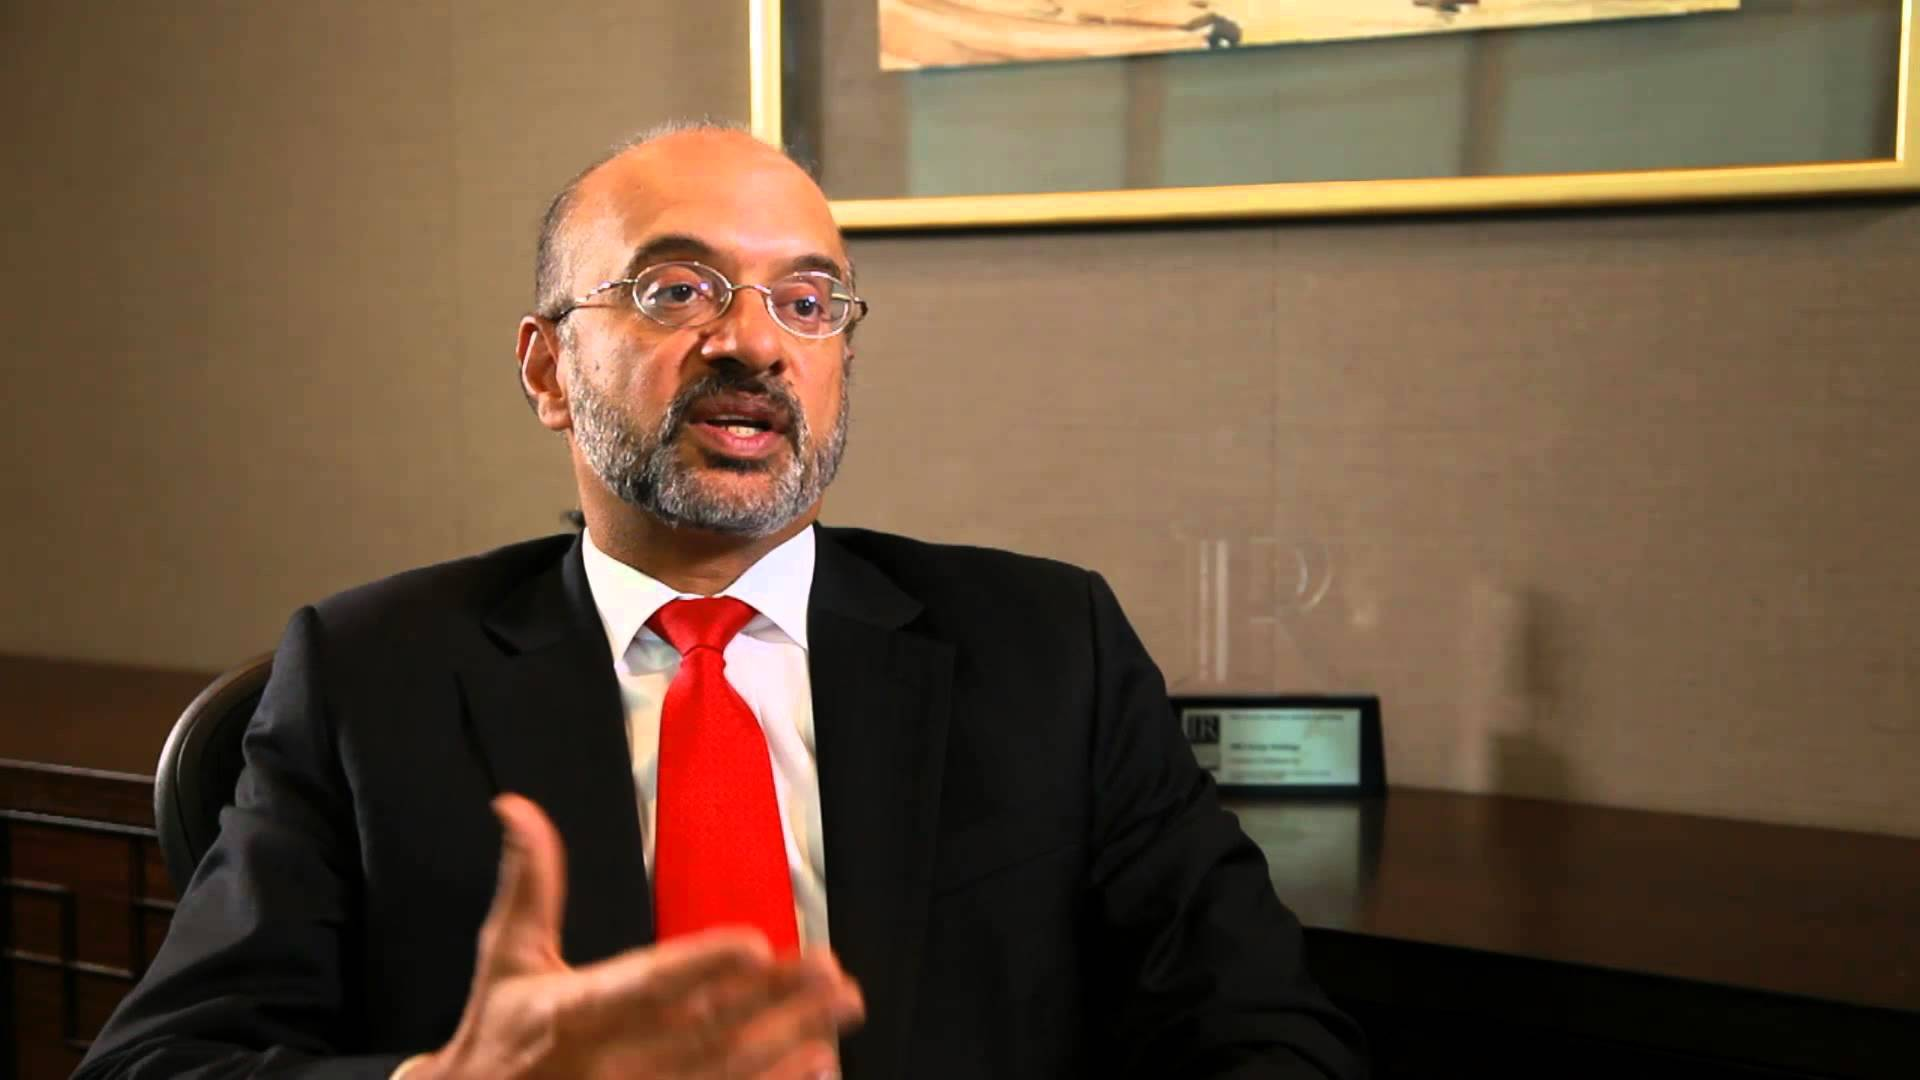 Piyush Gupta, CEO & Director, DBS Group